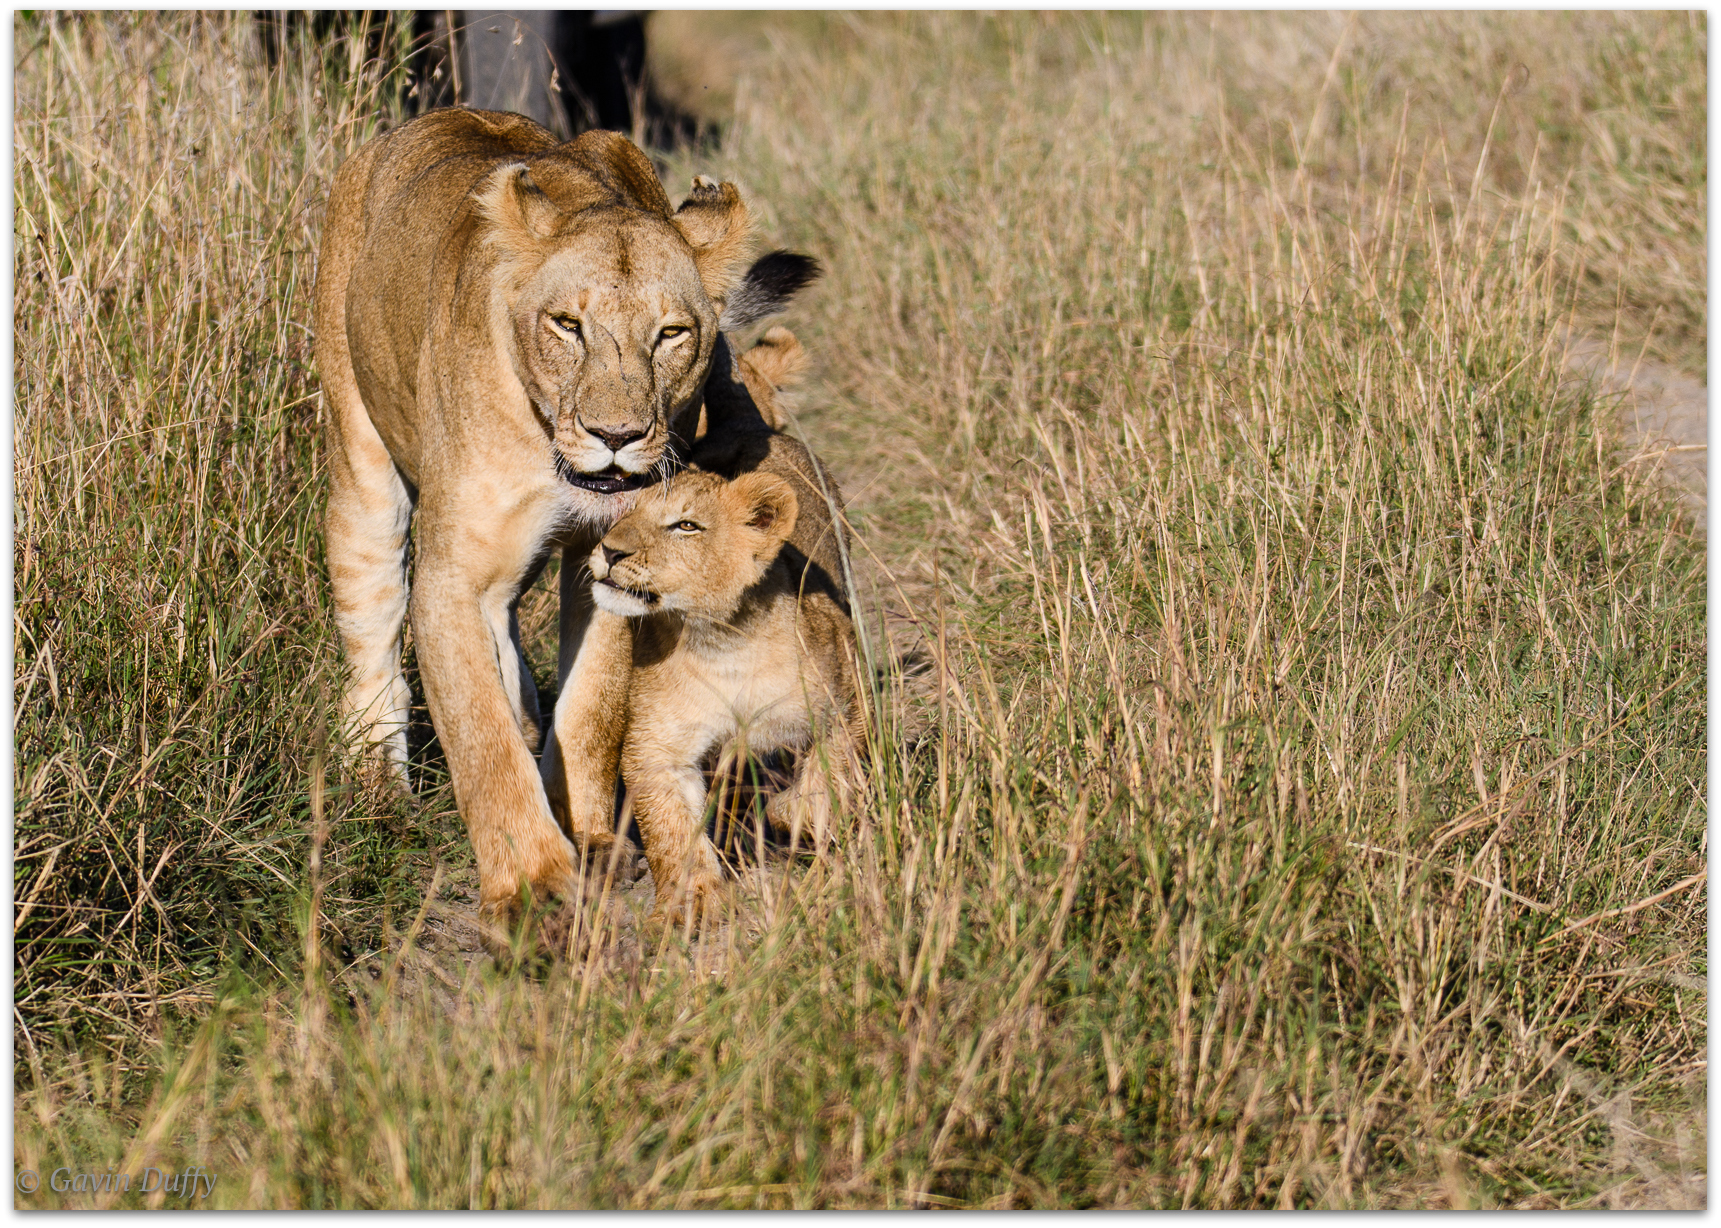 Lioness and cub reunited © Gavin Duffy